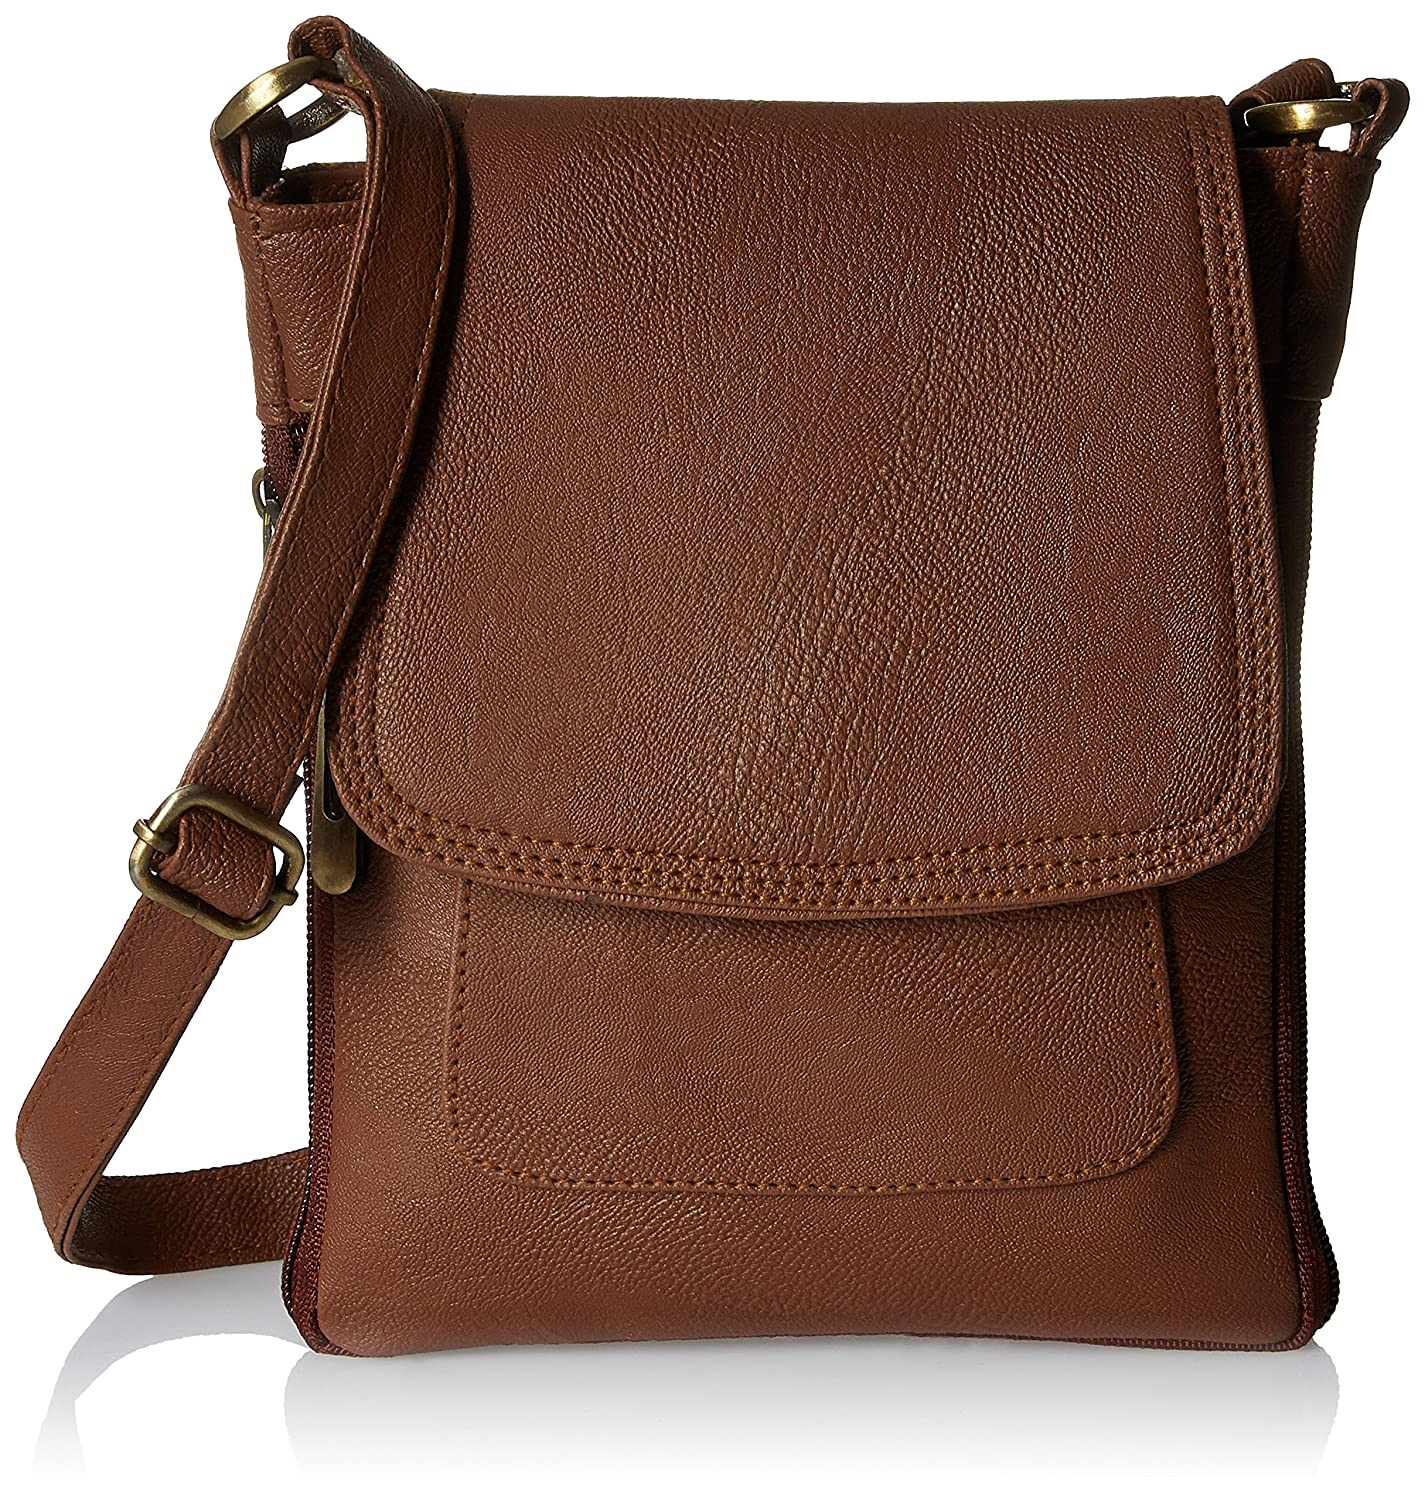 Alessia74 Women's Sling Bag (Tan) (PBG249I - 13081)